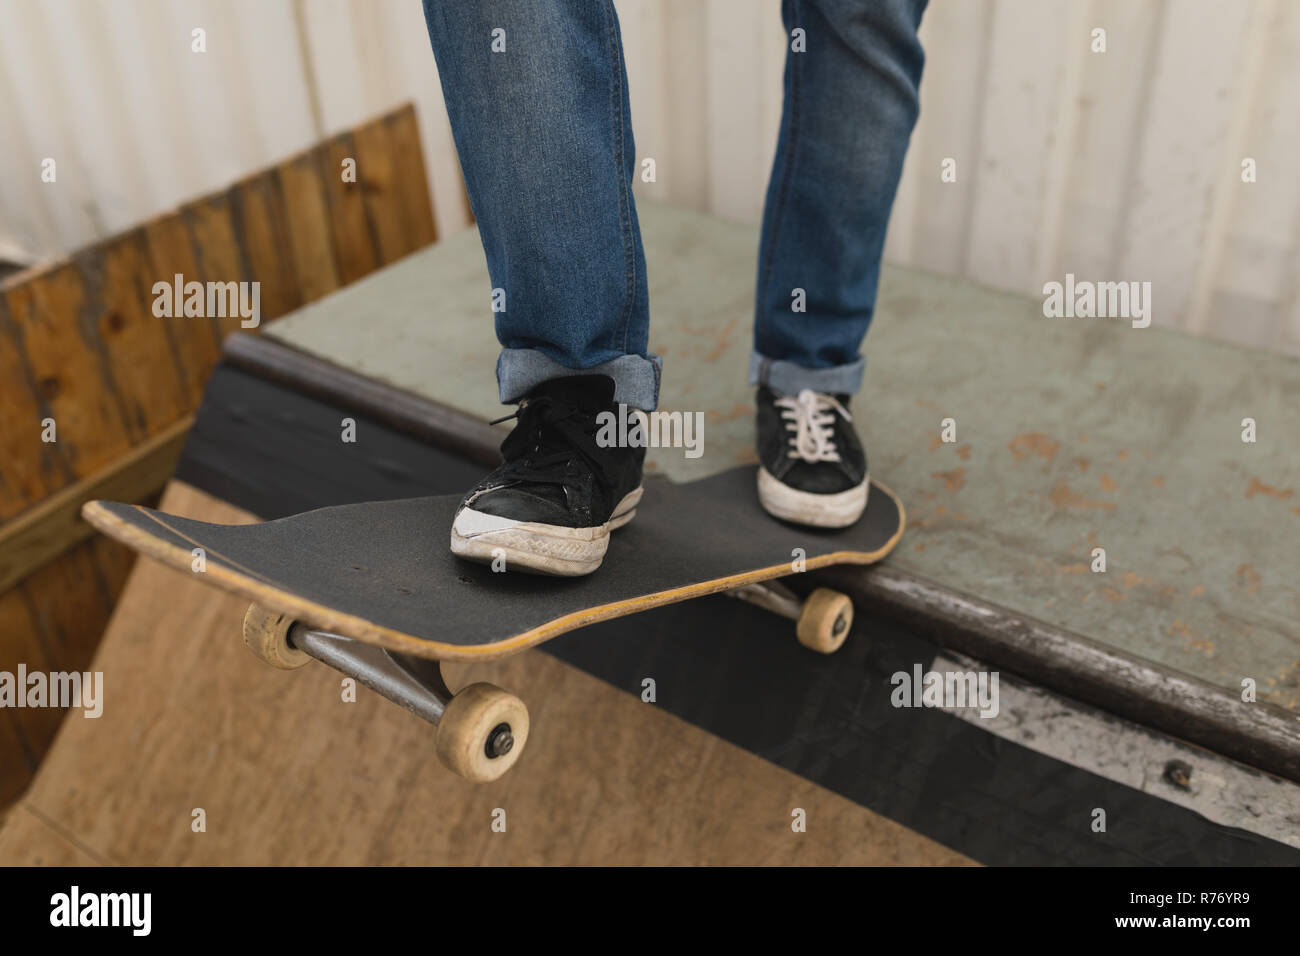 Skate Board Ramp >> Skateboarder Standing With Skateboard On Skateboard Ramp At